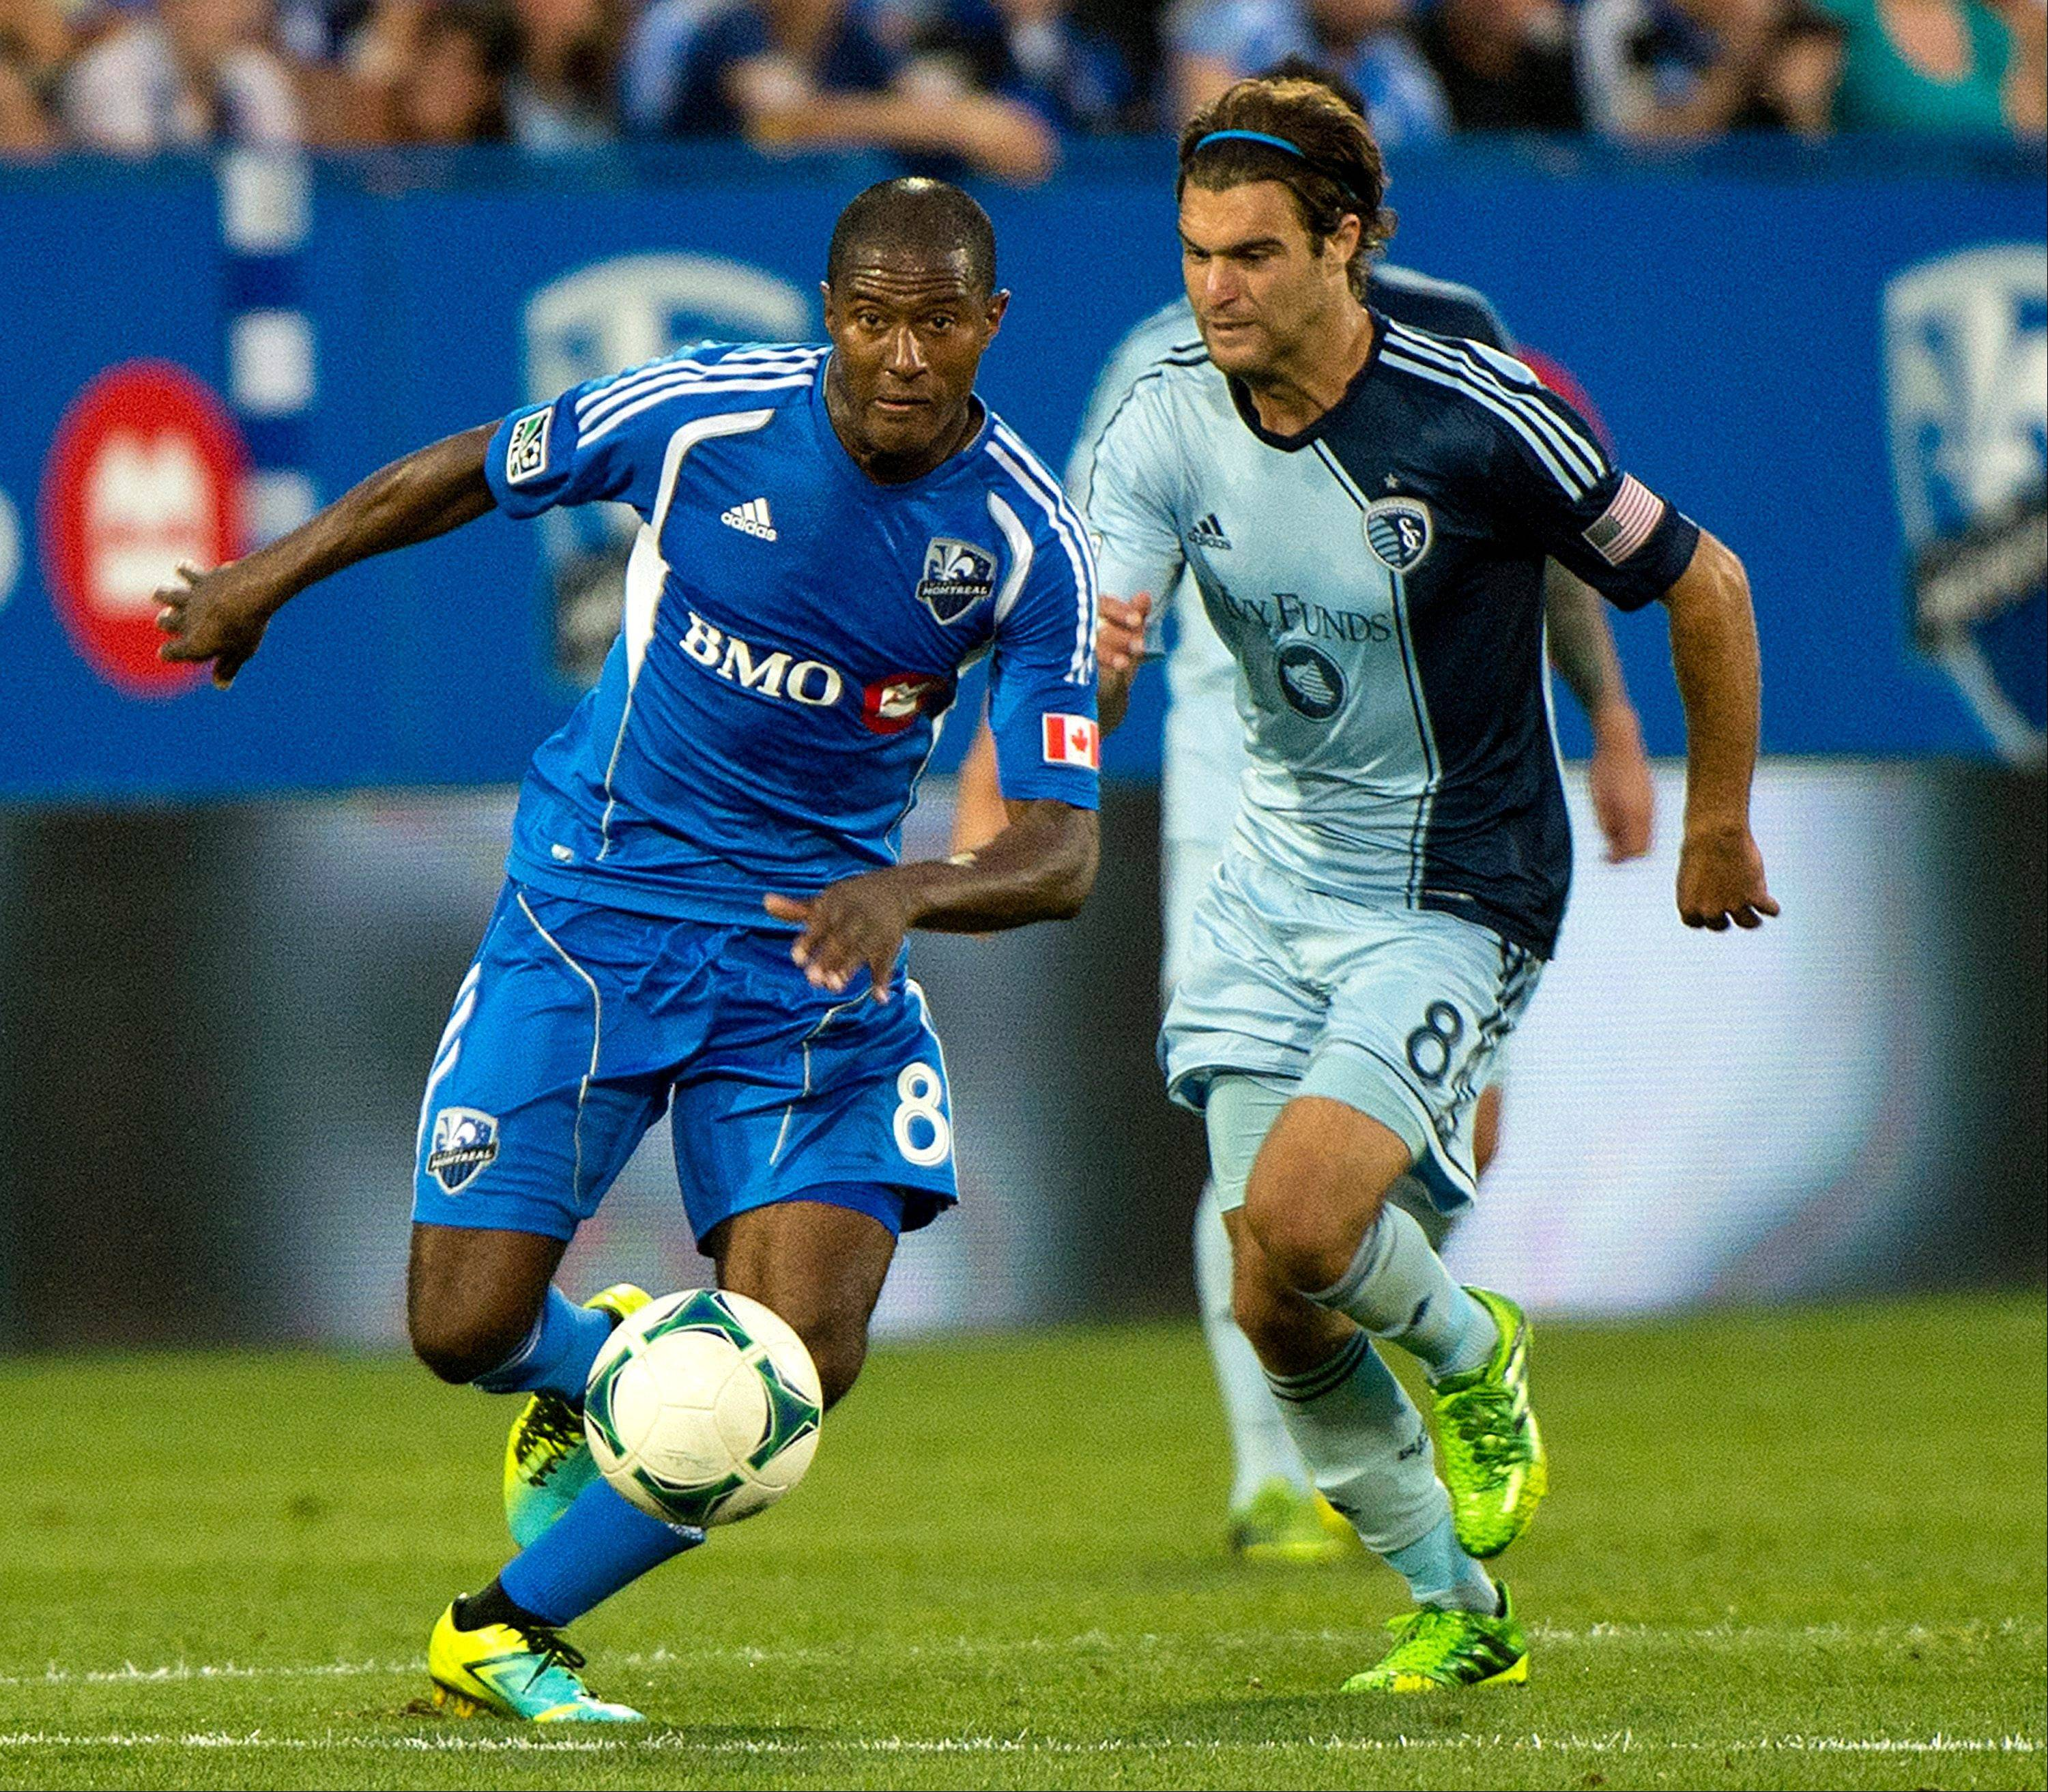 Sporting Kansas City�s Graham Zusi, right, will be among the MLS all-stars to take on AS Roma on Wednesday in Kansas City.